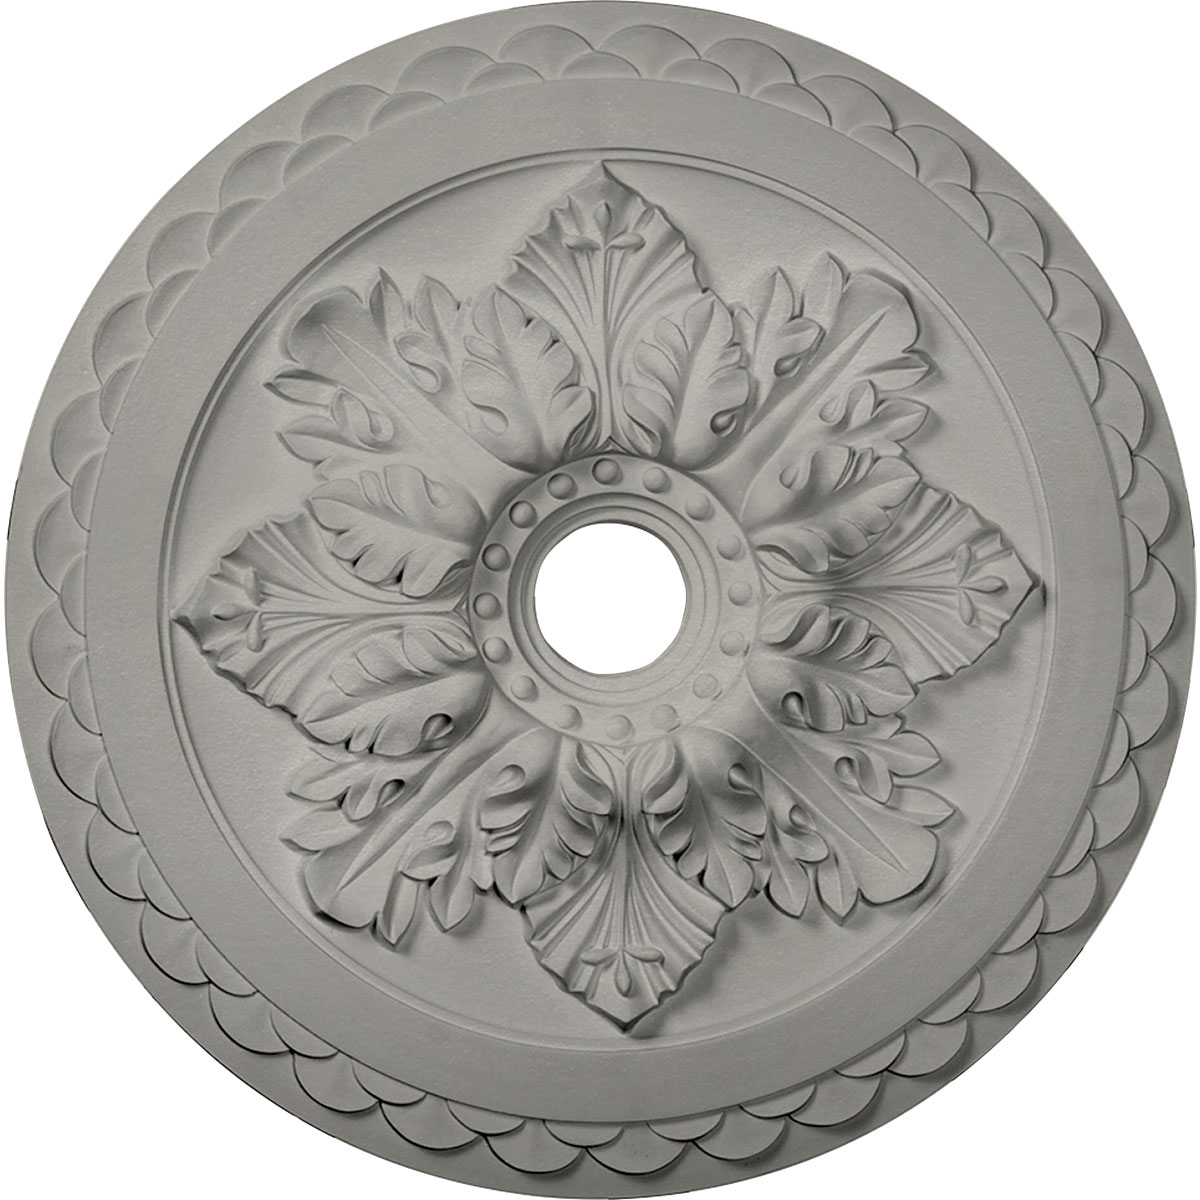 23 5 8 Od X 3 Id X 2 P Bordeaux Deluxe Ceiling Medallion Fits Canopies Up To 4 Hand Painted Flash Gold Walmart Com Walmart Com